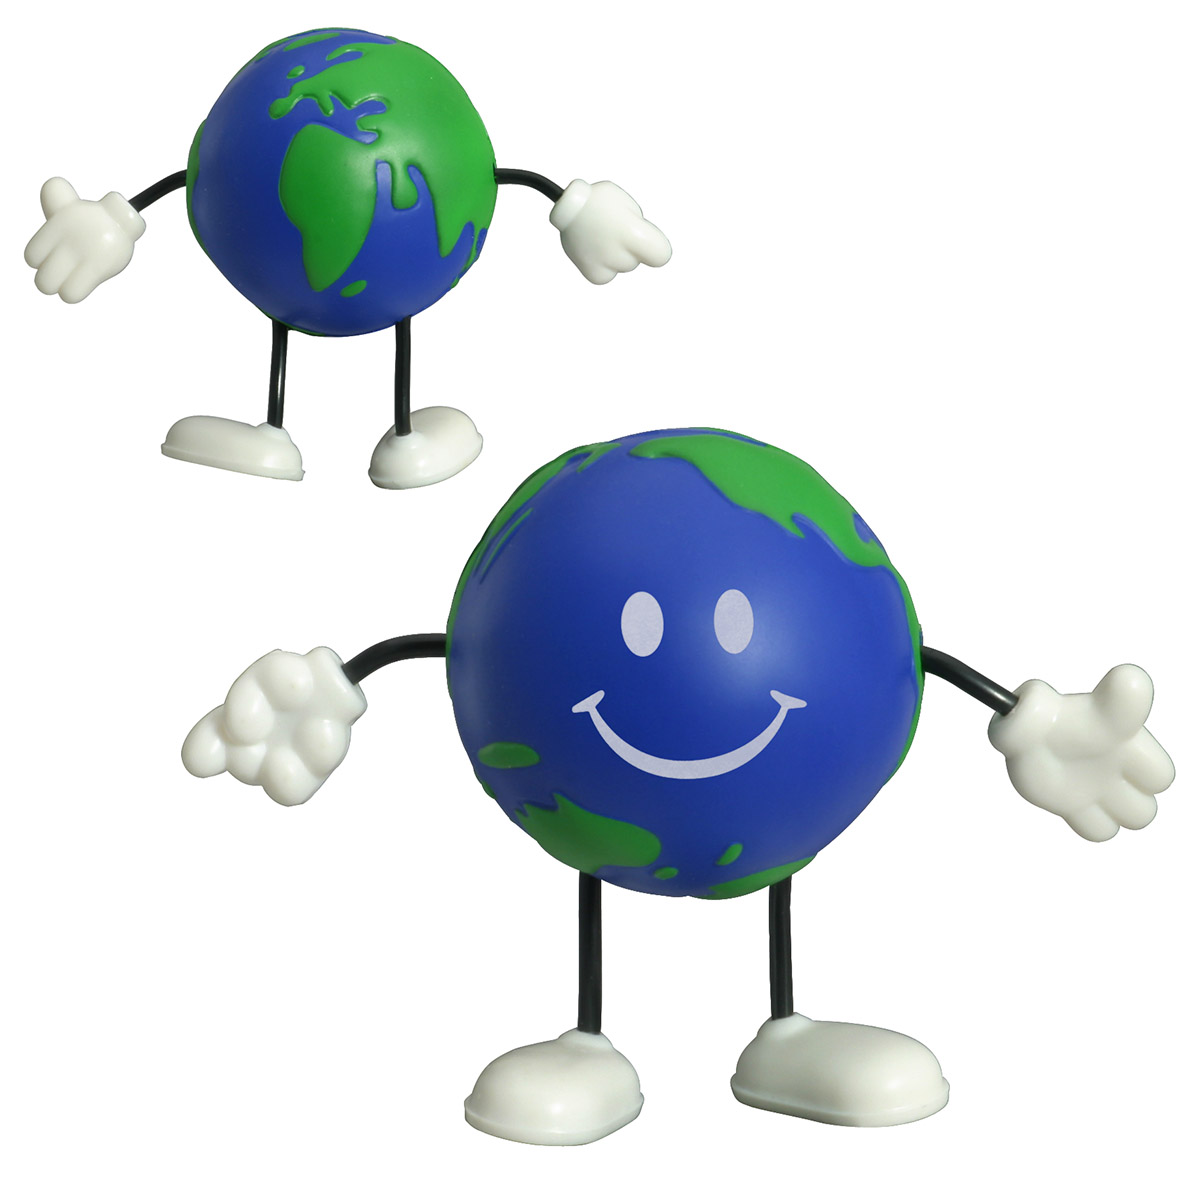 Earthball Stress Reliever Figure, LCH-EB01, 1 Colour Imprint